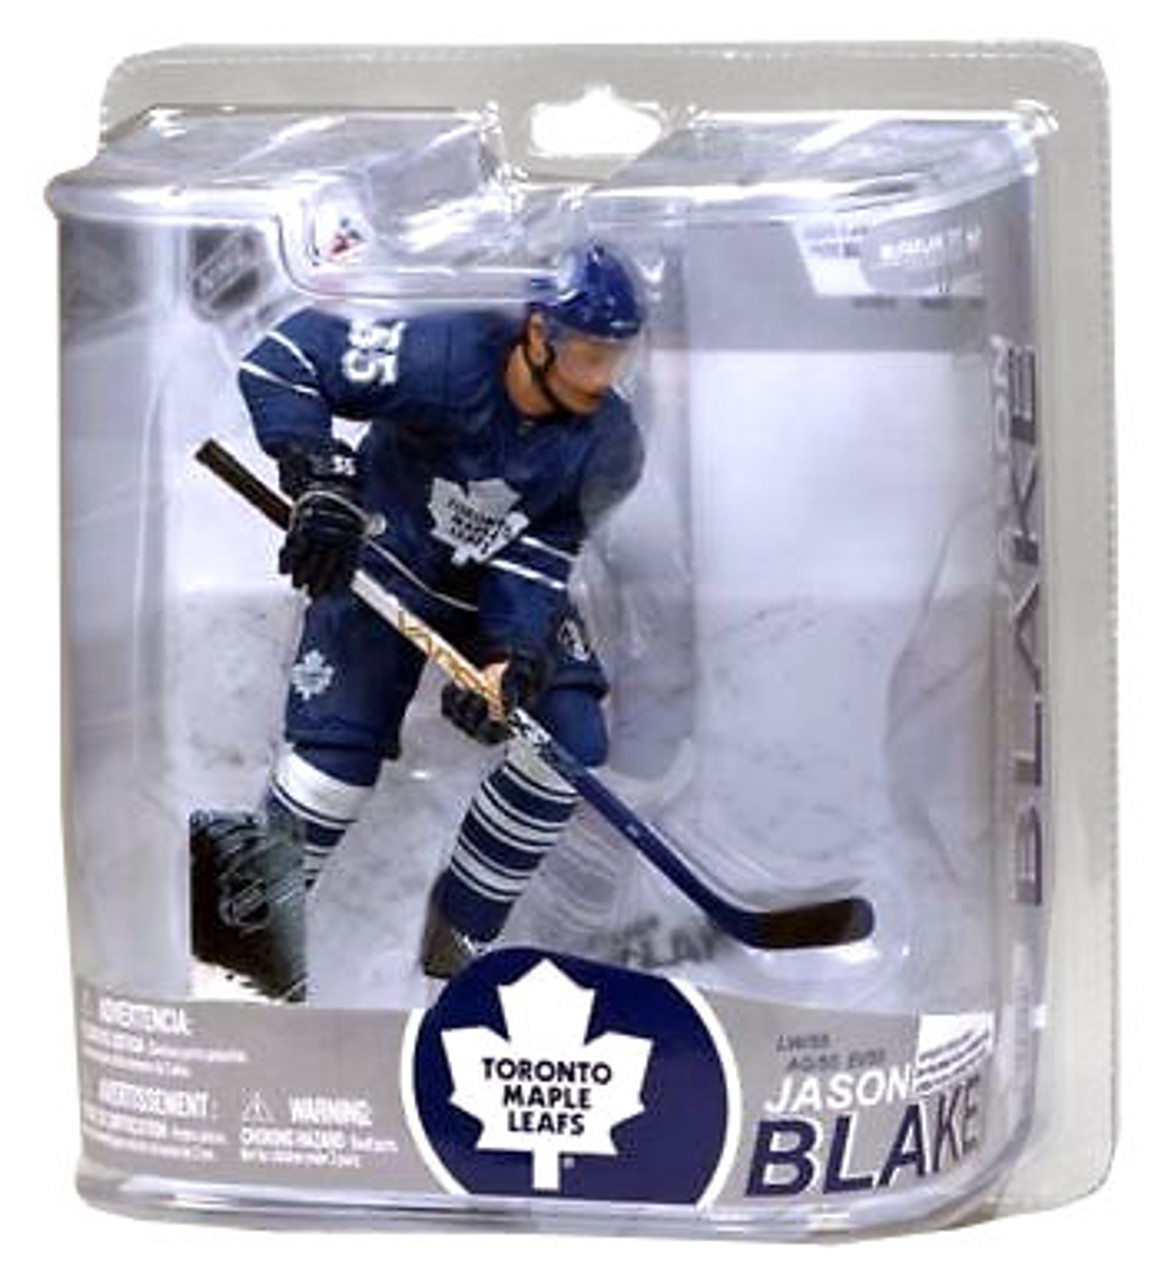 McFarlane Toys NHL Toronto Maple Leafs Sports Picks Series 17 Jason Blake Action Figure